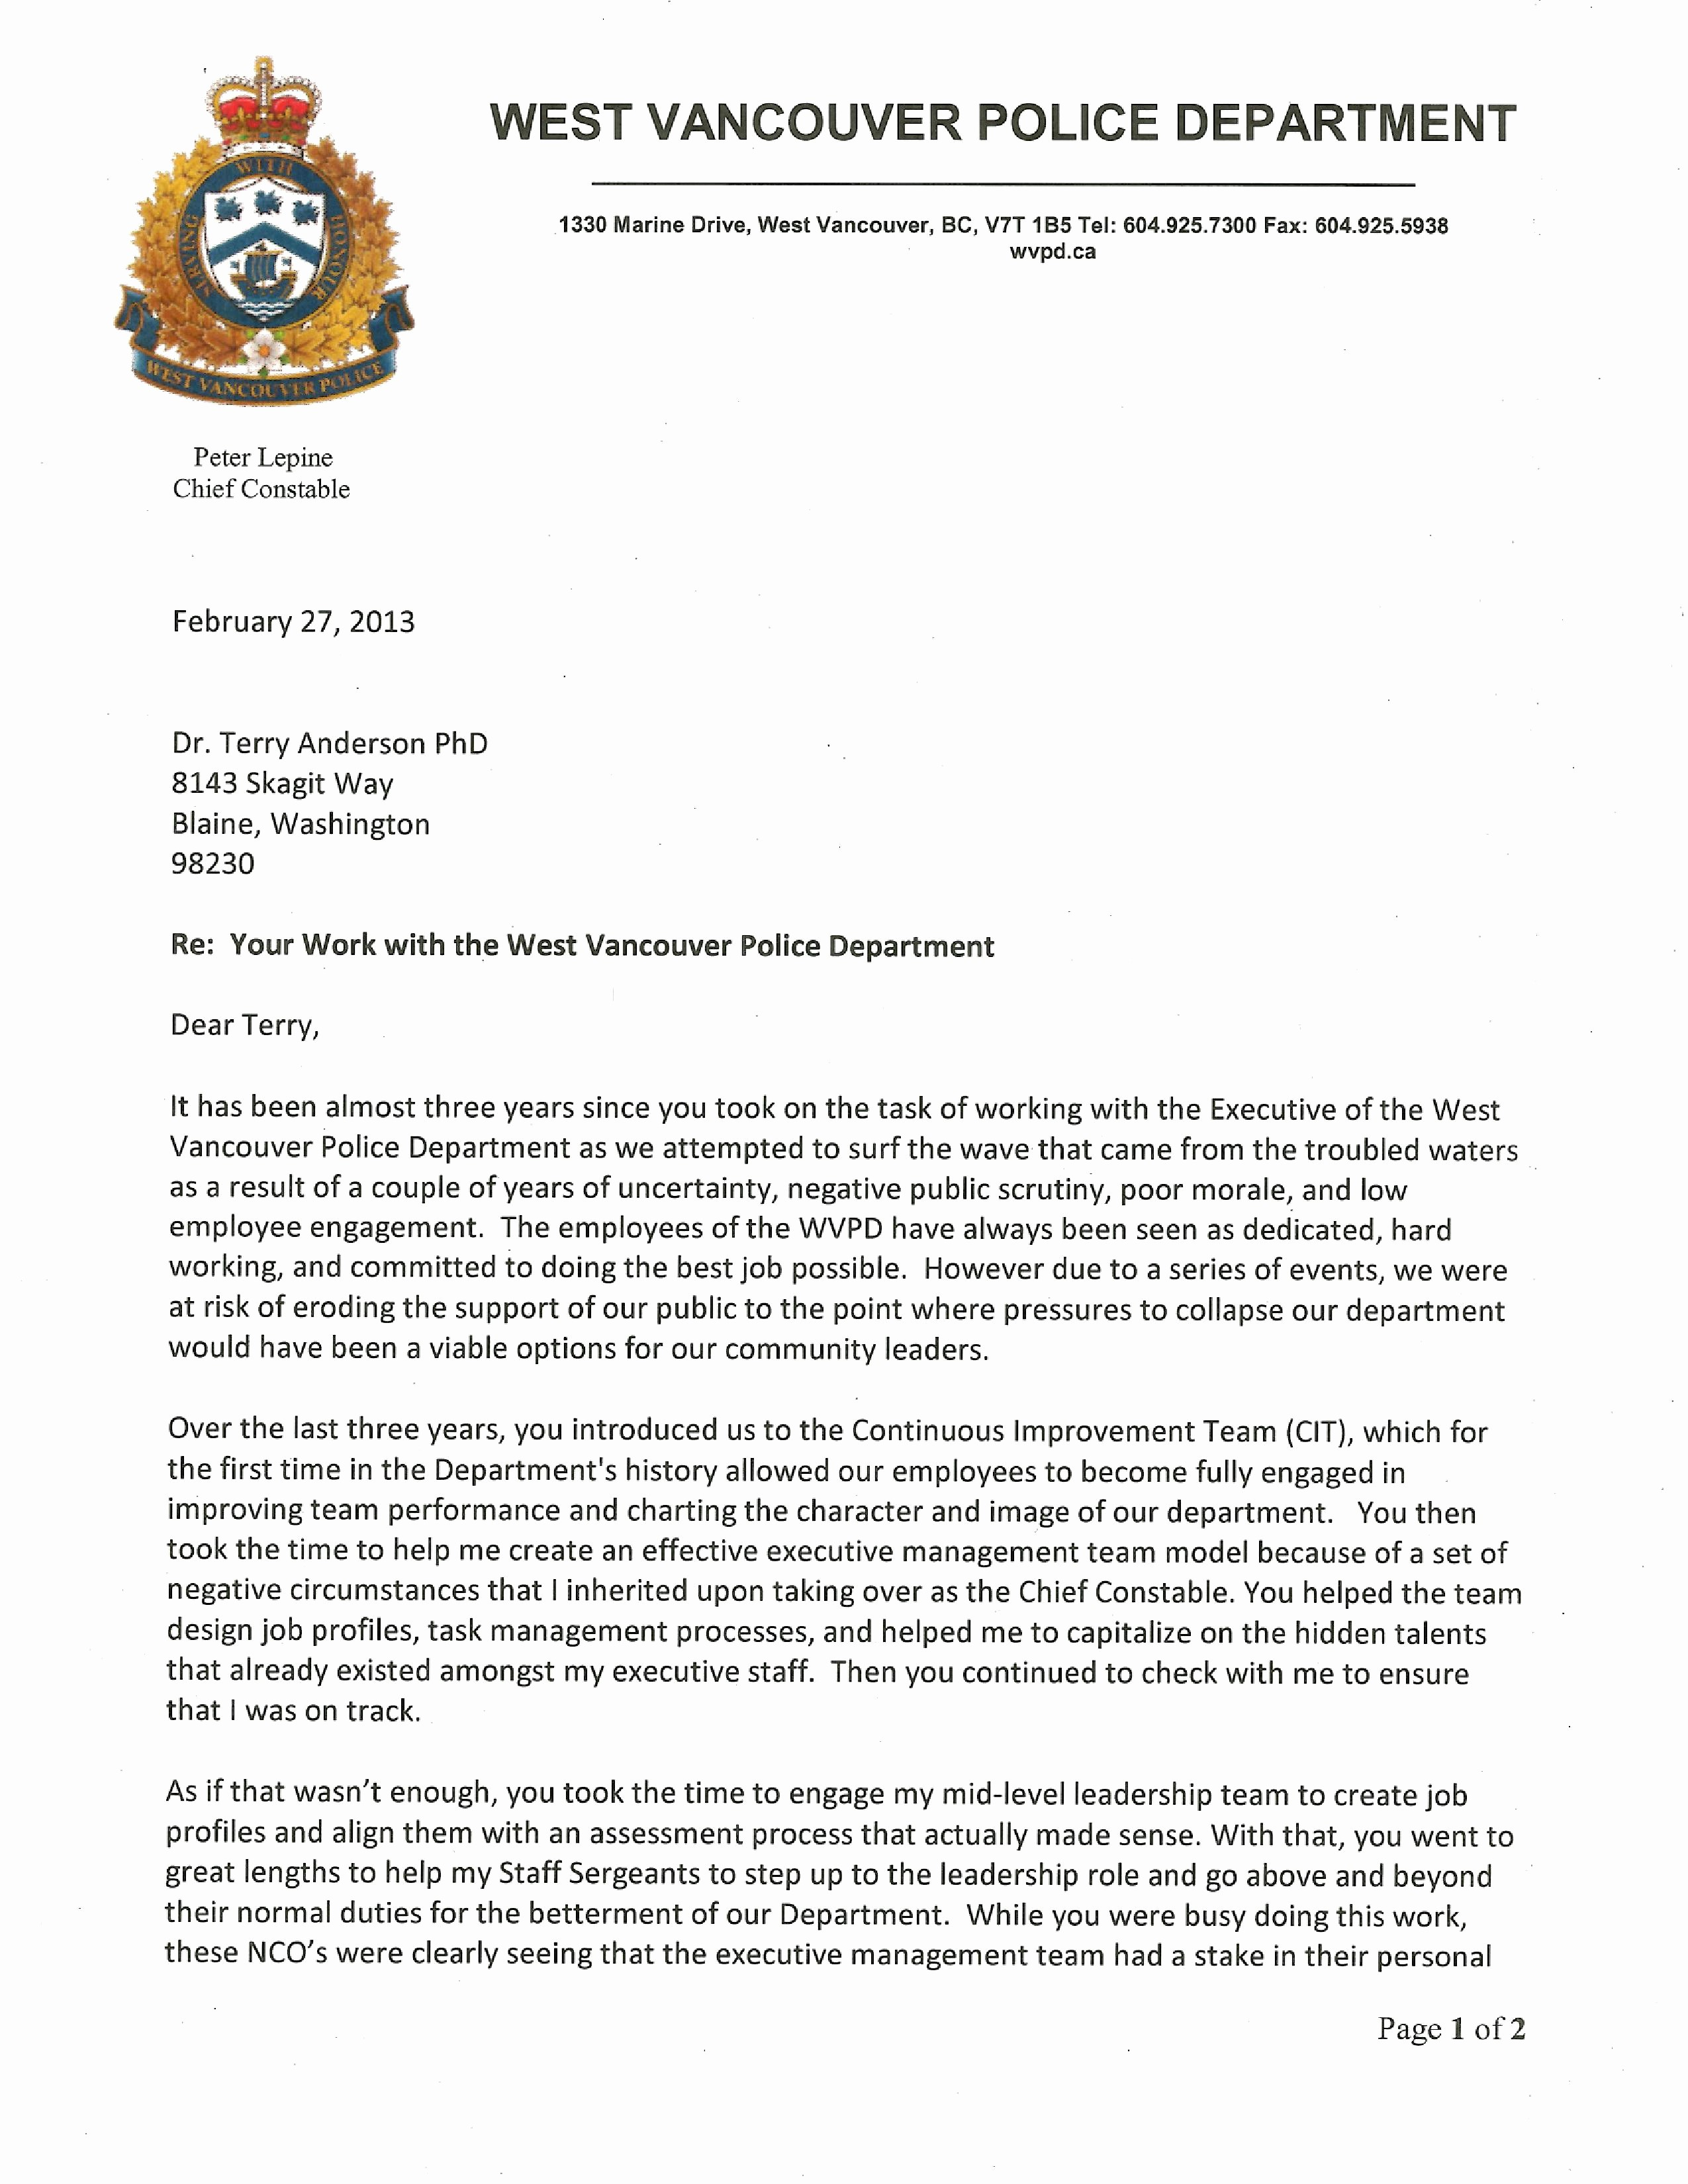 Letter Of Recommendation with Letterhead Best Of Letters Of Re Mendation – Consulting Coach – anderson